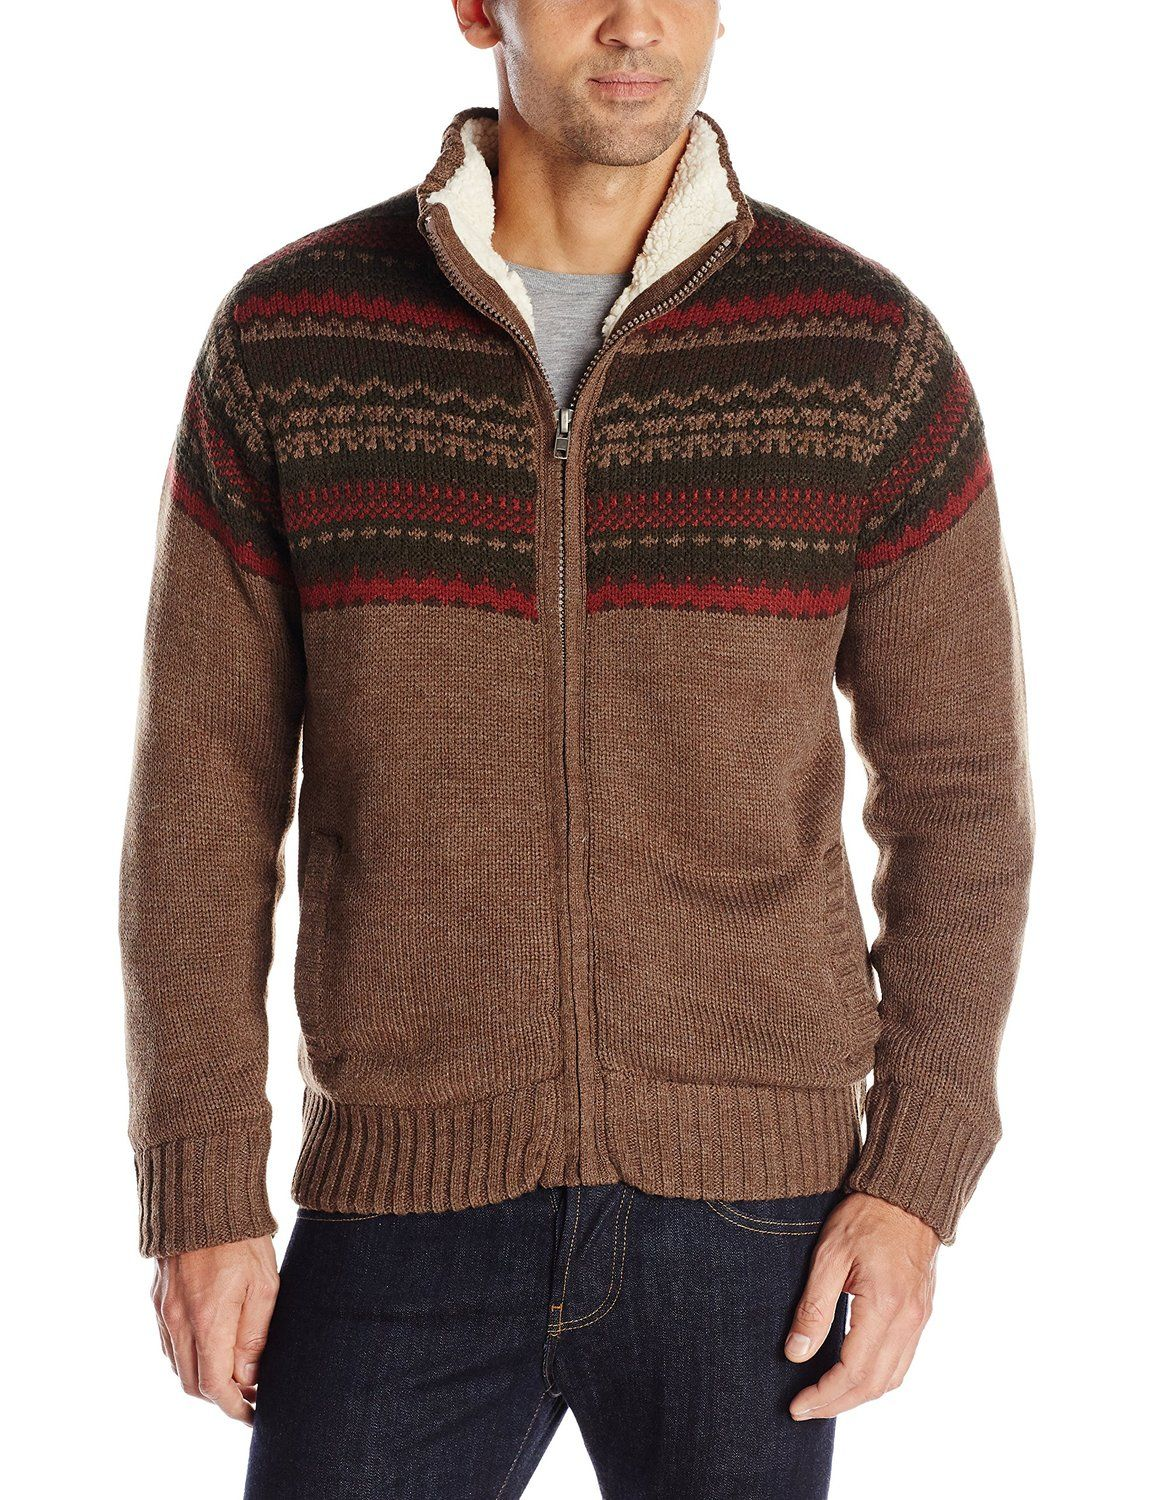 Field Stream Mens Sherpa Lined Sweater Clothes Shoes